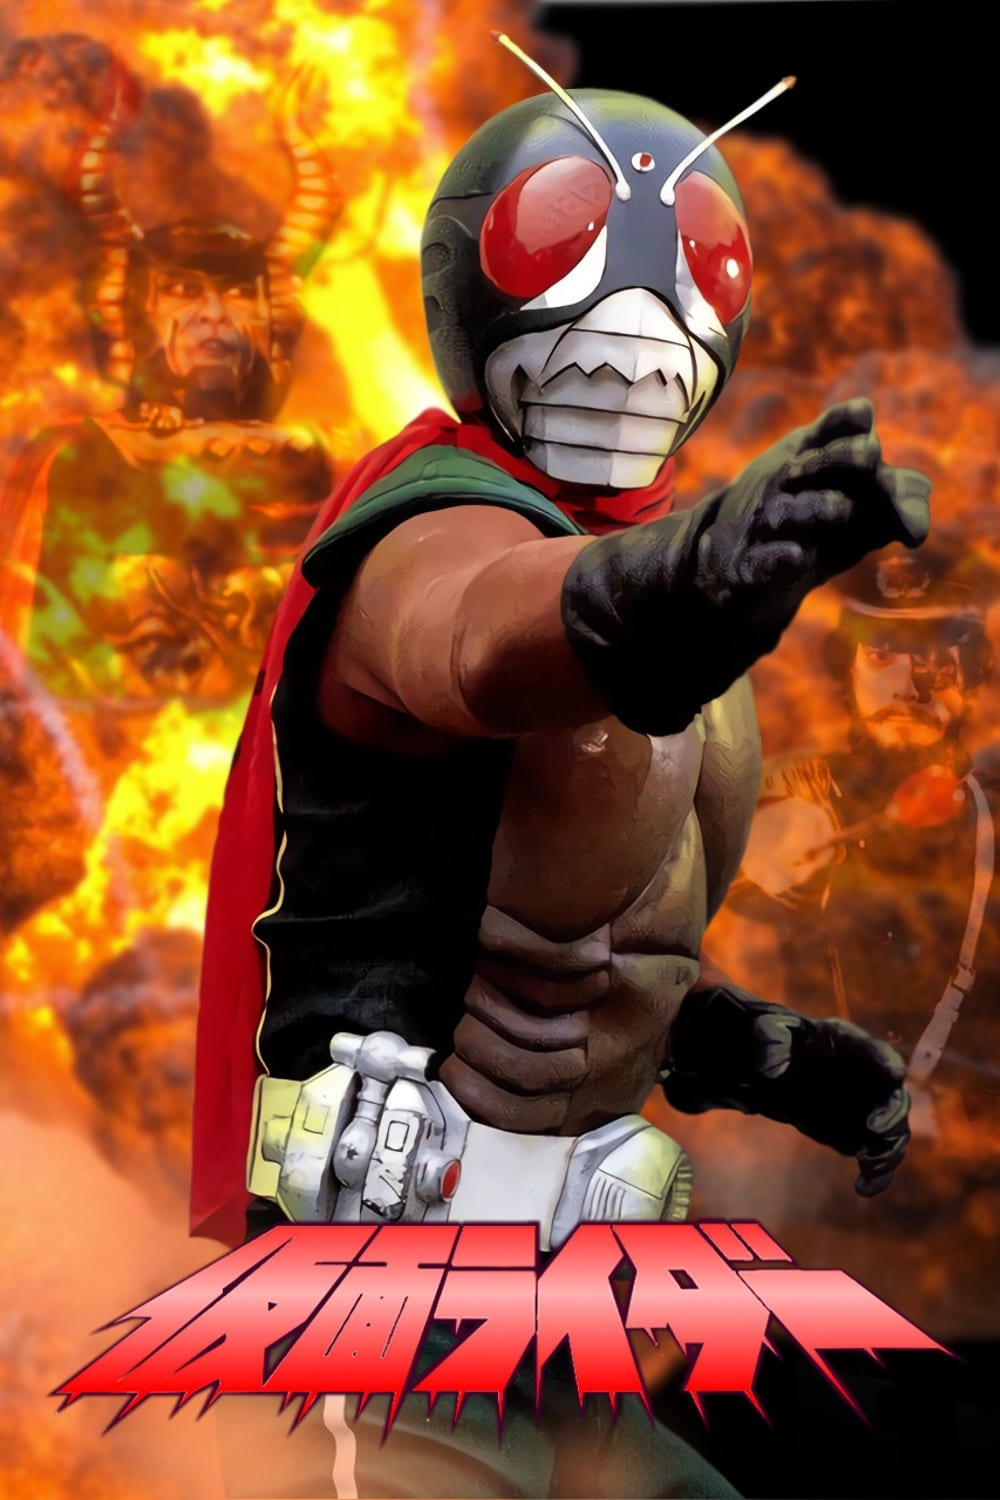 Kamen Rider - Season 21 Episode 30 : King, Panda, Memory of Flame Season 6